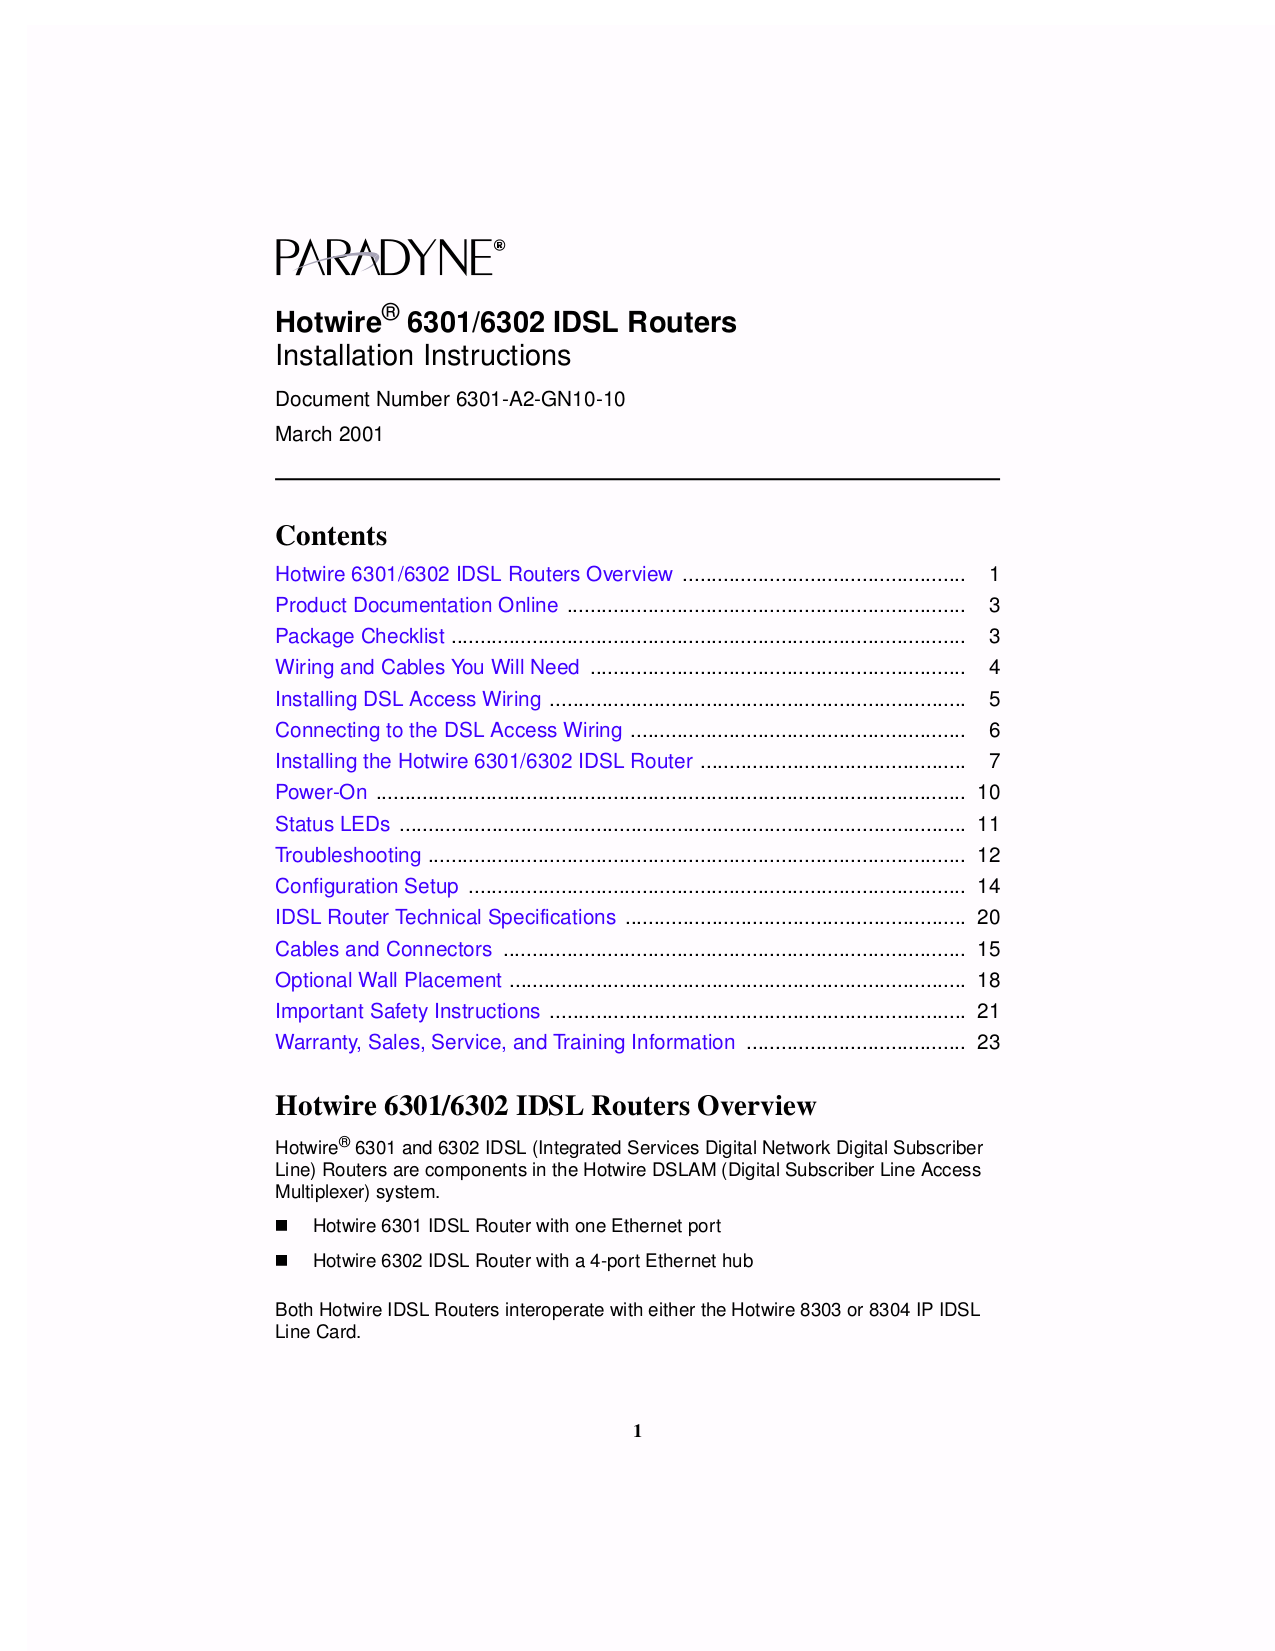 pdf for Zhone Router 6301 manual